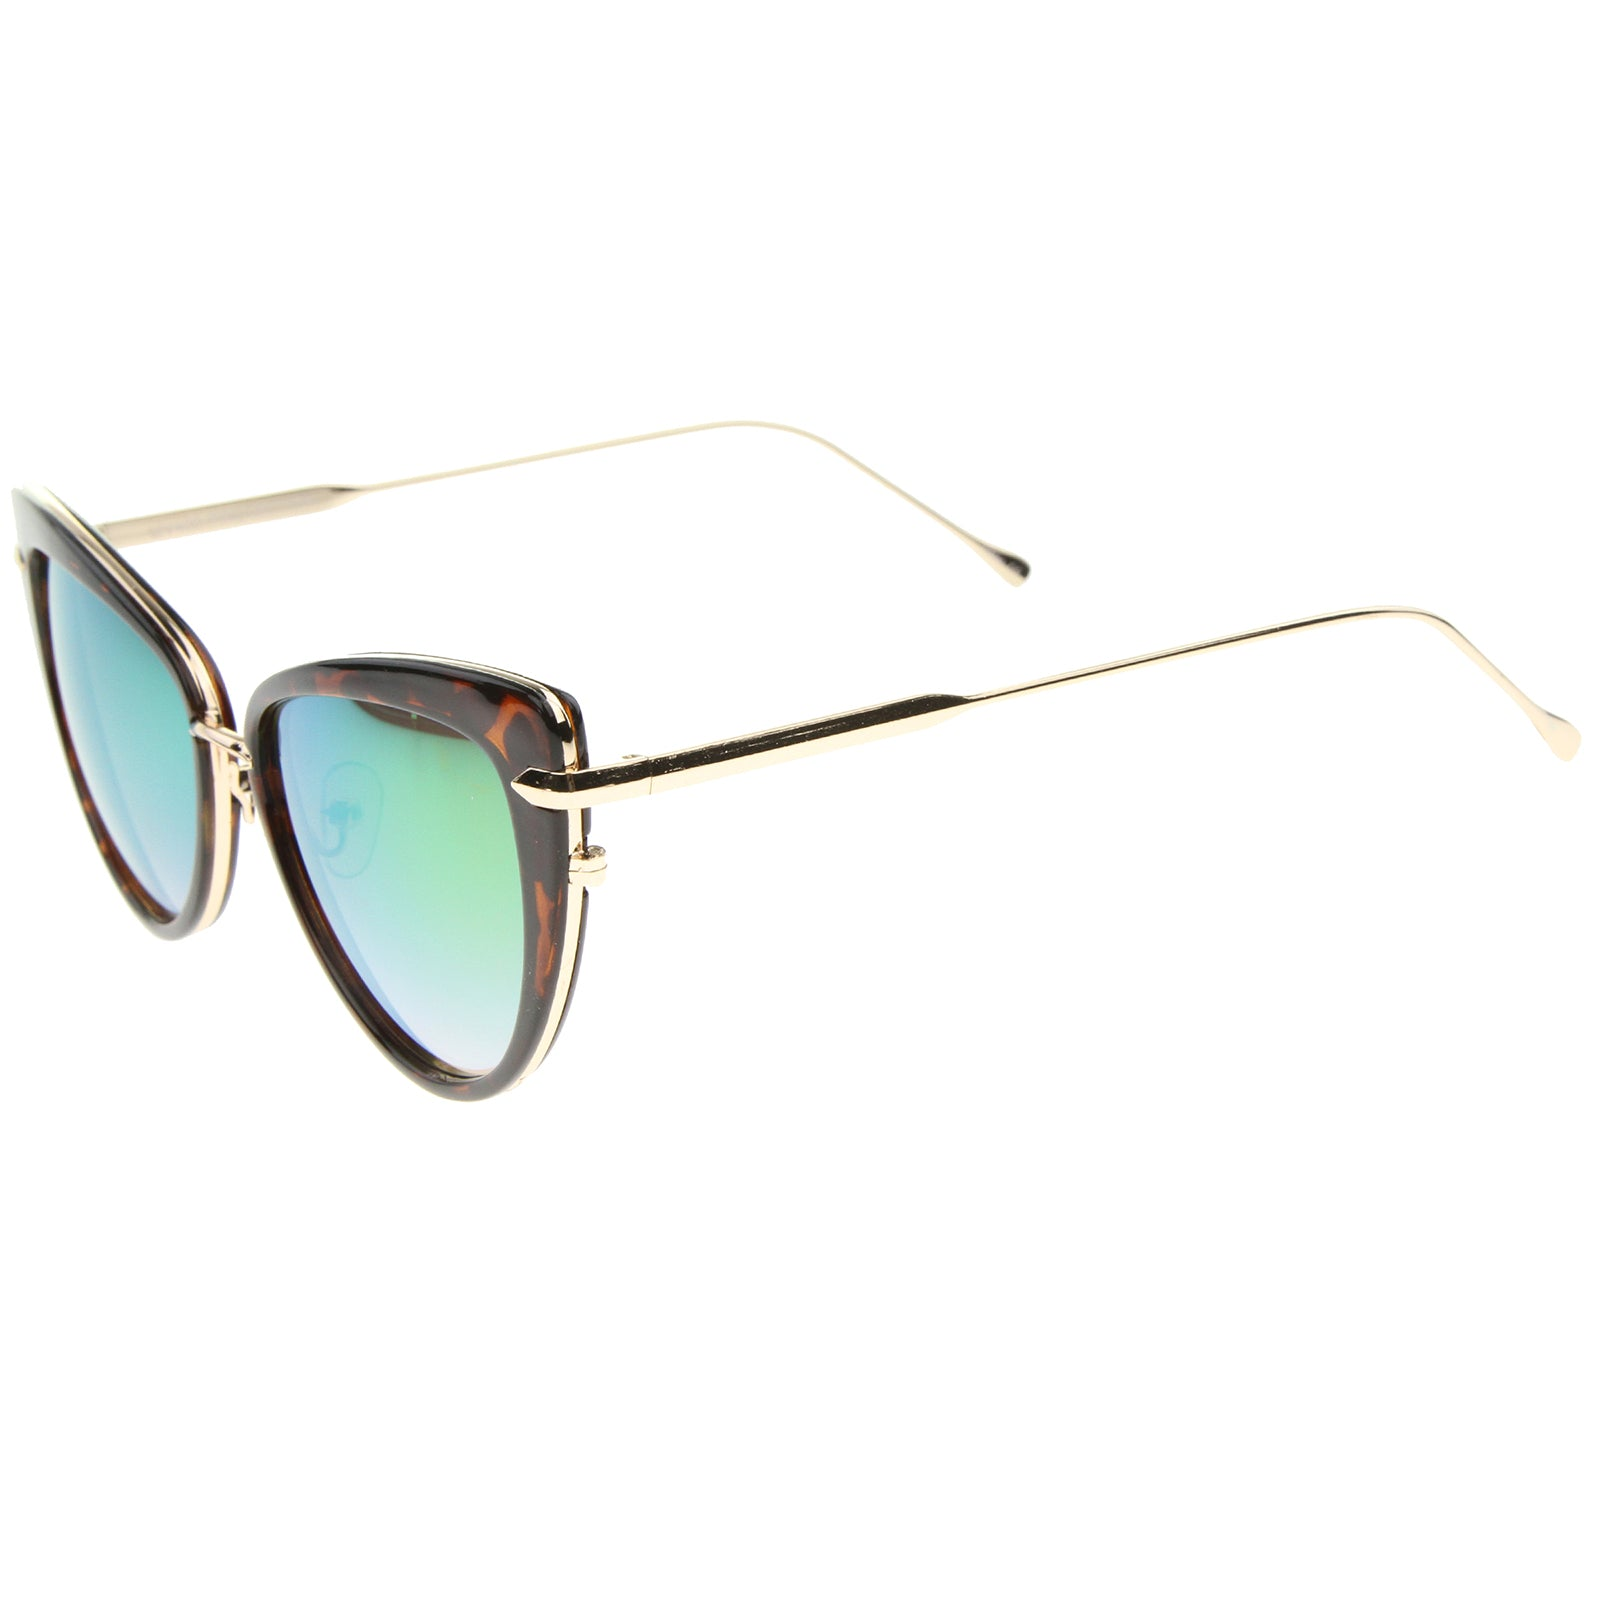 Women's High Fashion Metal Temple Super Cat Eye Sunglasses 55mm - sunglass.la - 7